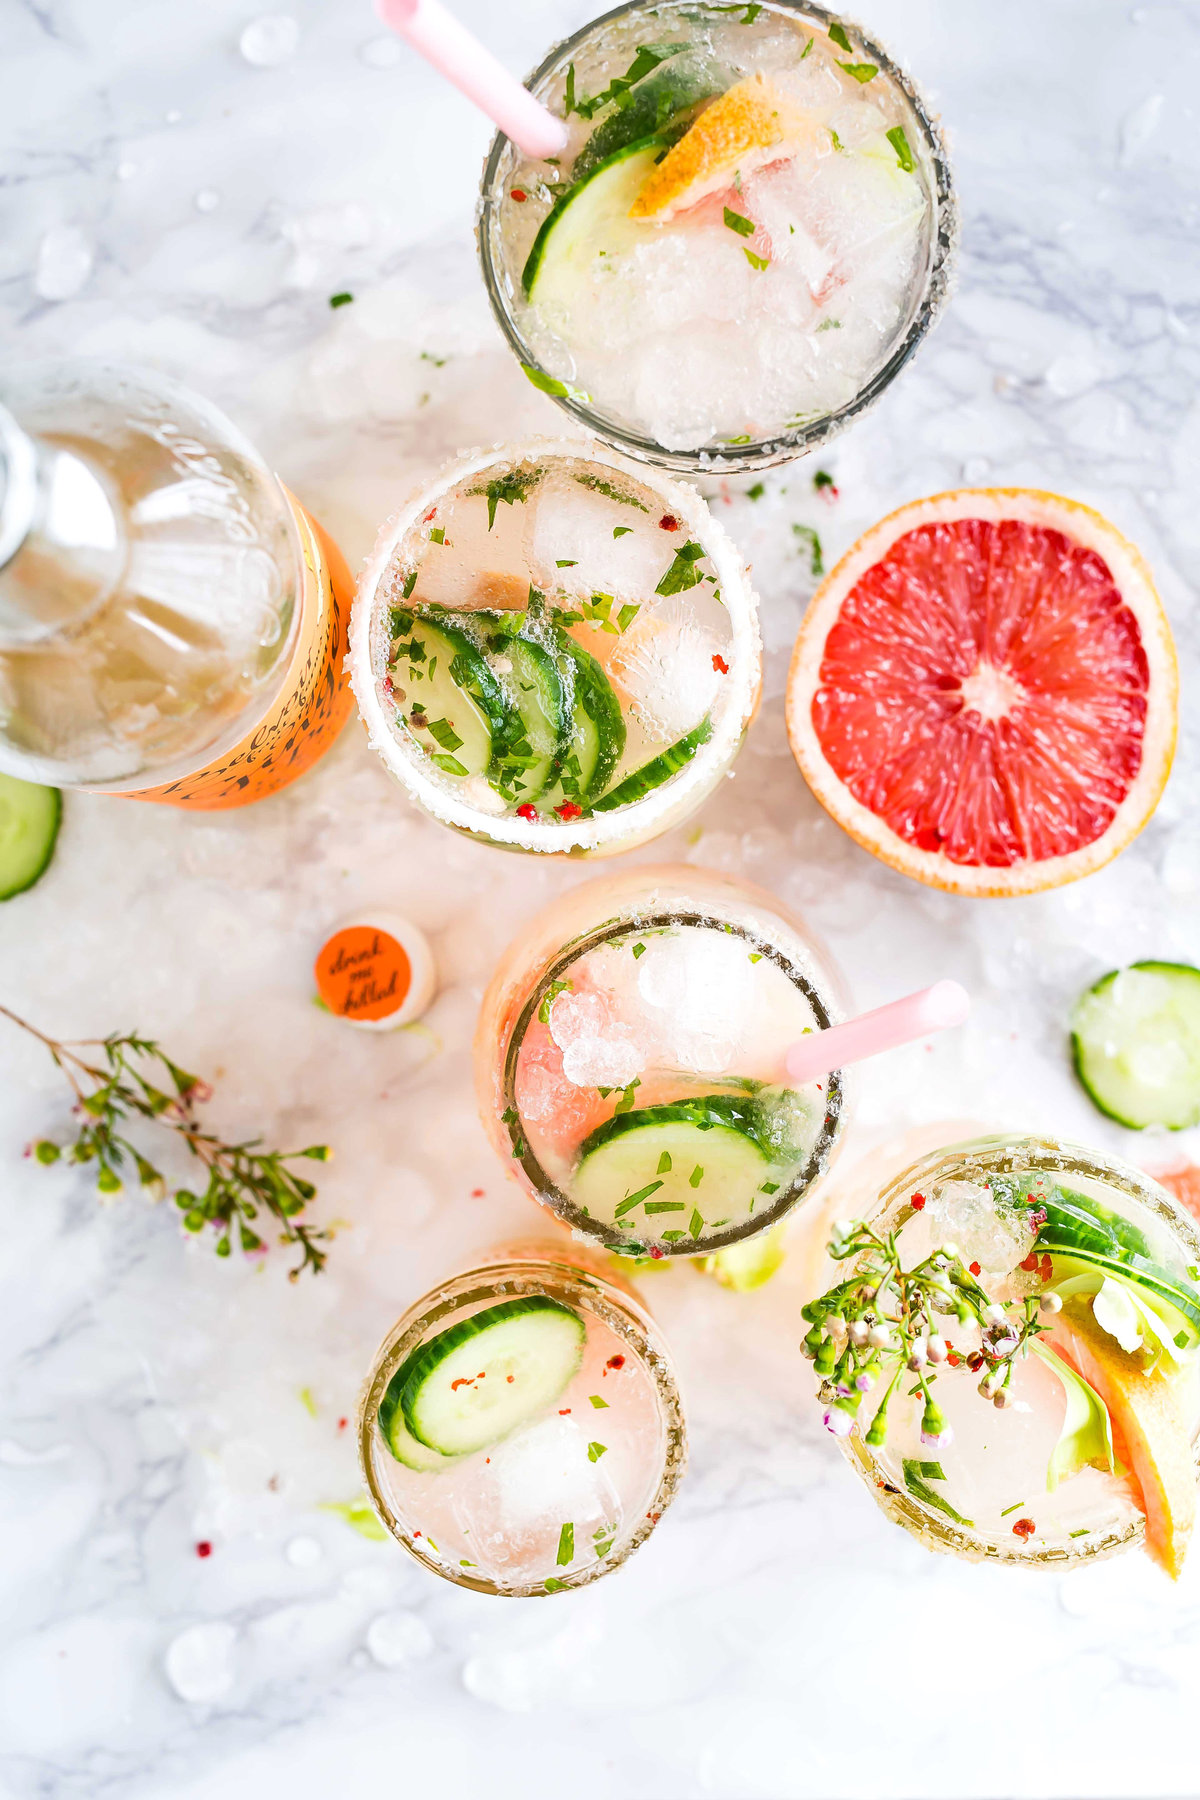 Brightly colored craft cocktails with cucumber & grapefruit